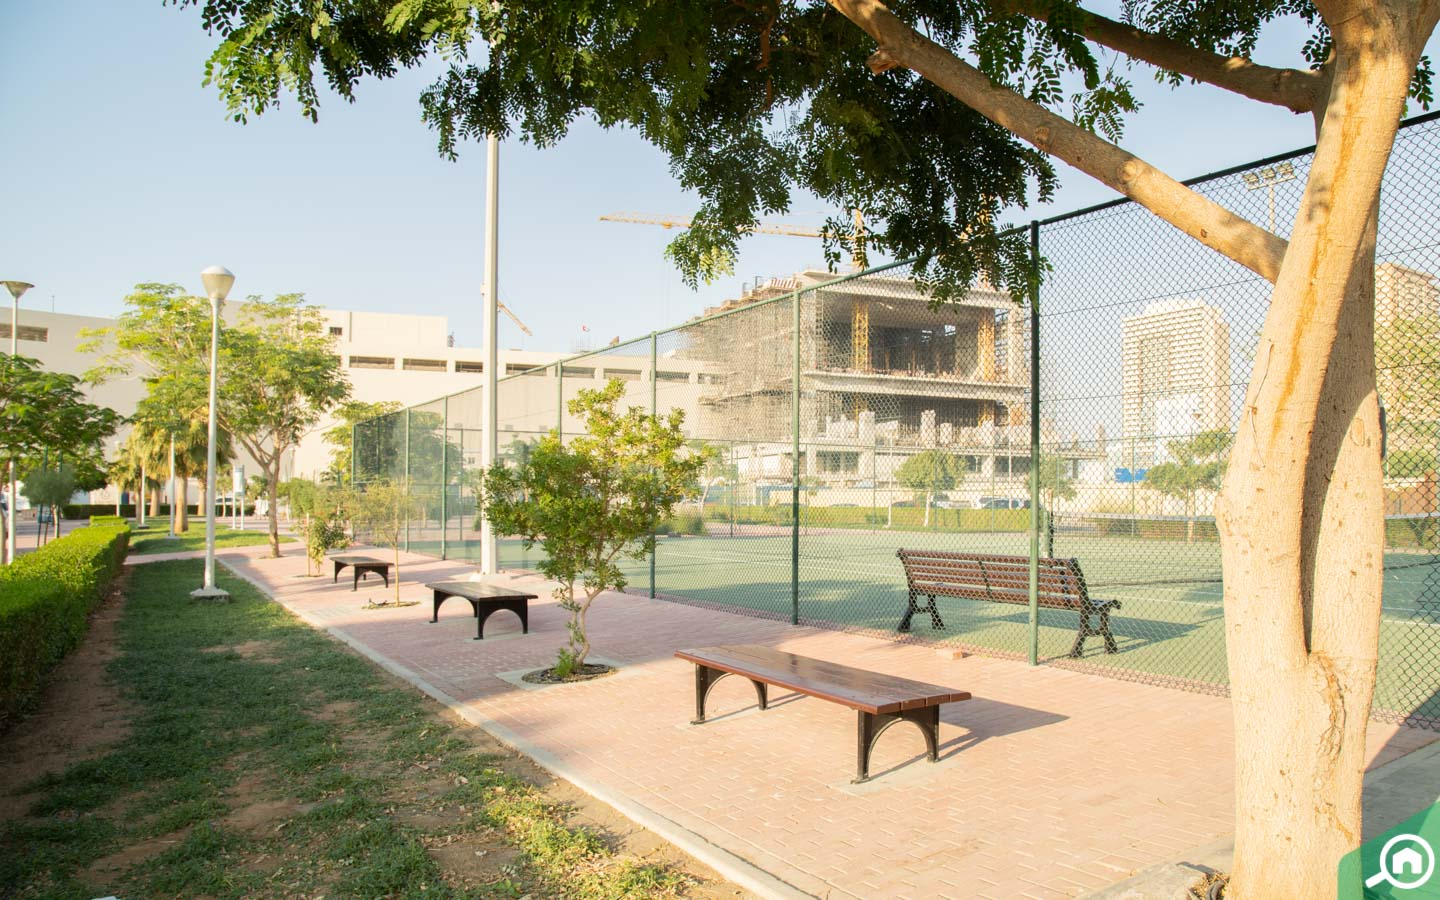 View of benches, greenery and Jumeirah Village triangle tennis court